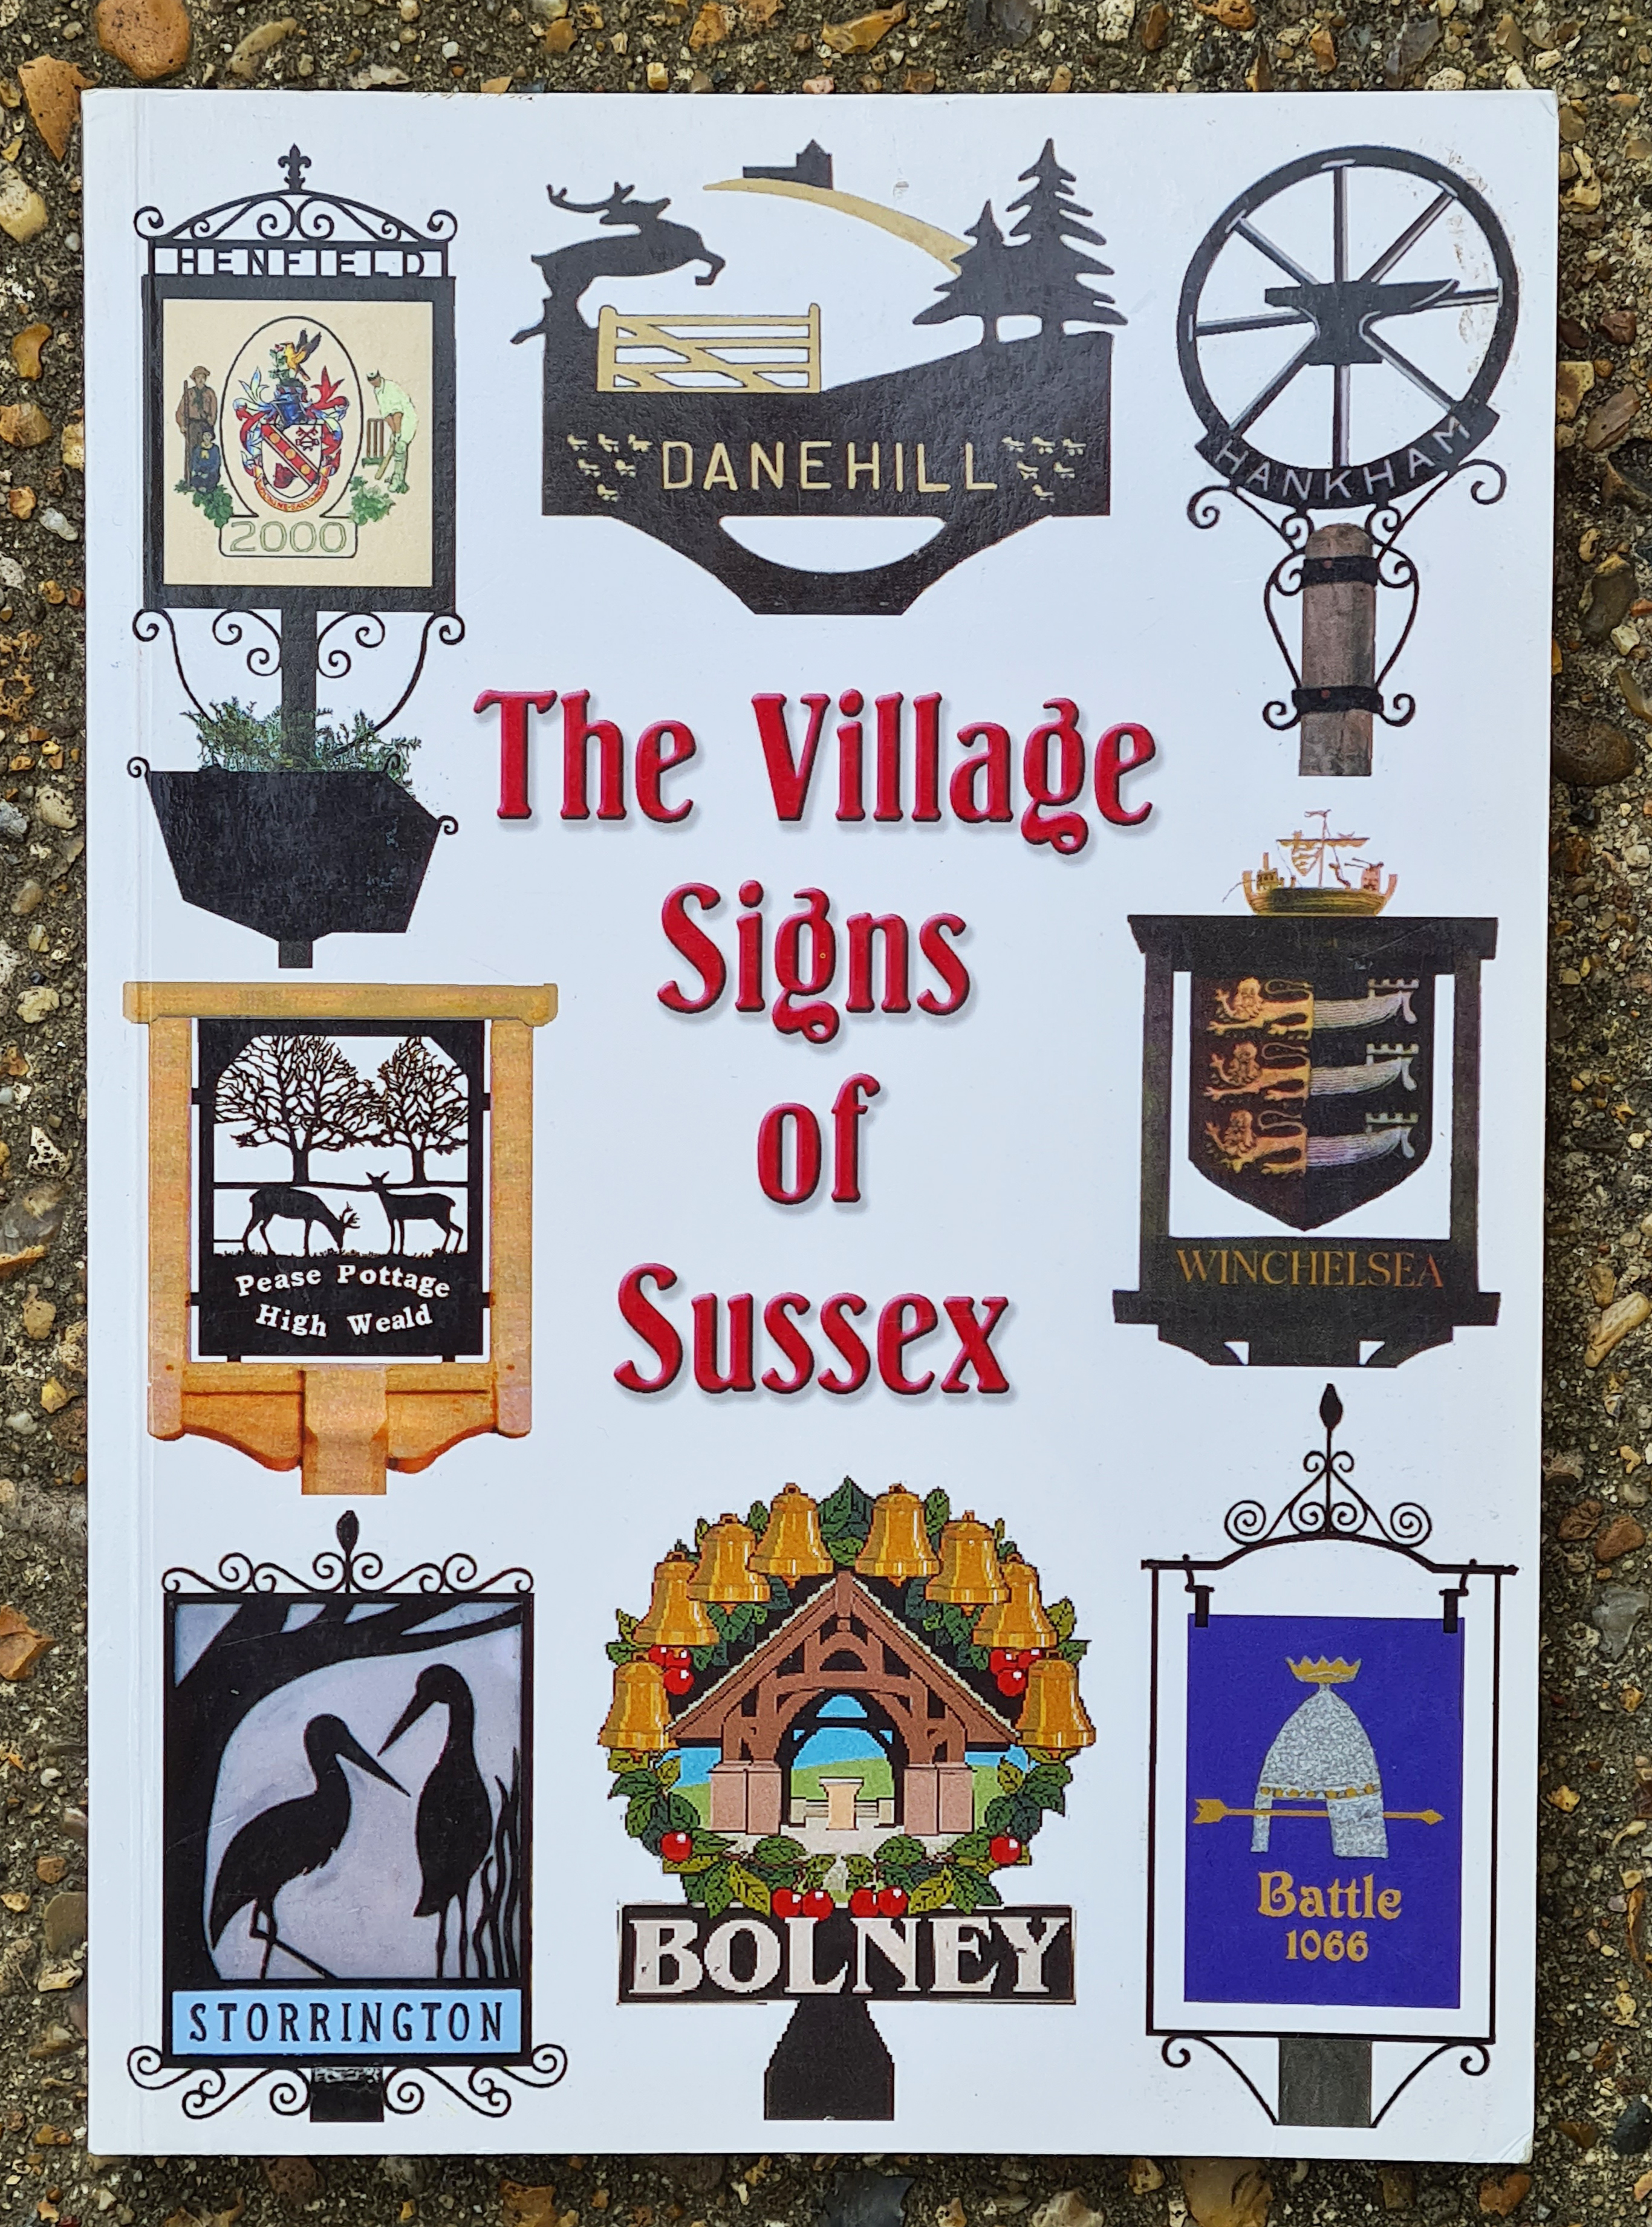 The Village Signs of Sussex